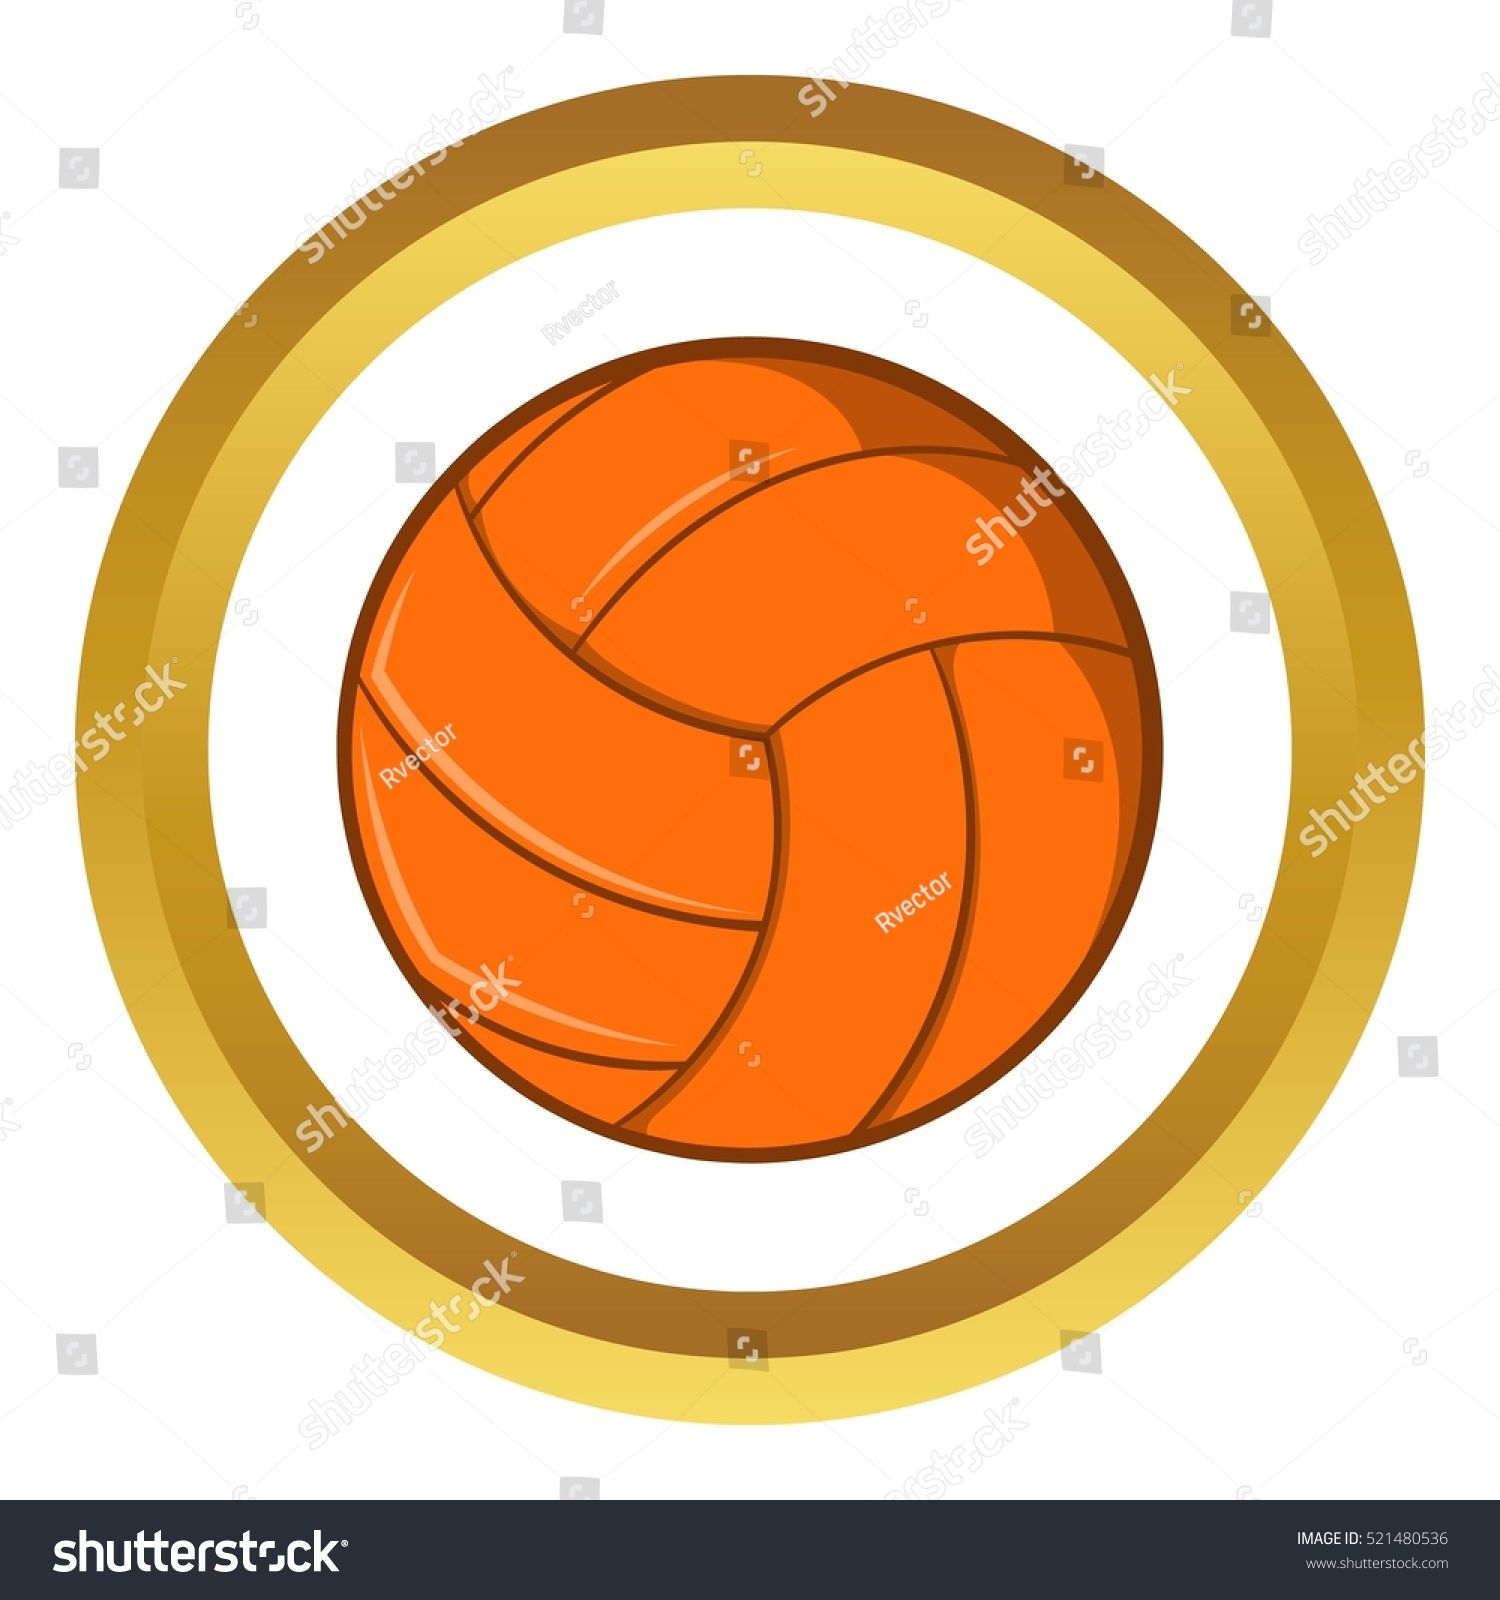 Volleyball Vector Icon In Golden Circle Cartoon Style Isolated On White Background Ad Spon Golden Circle Icon V In 2020 Cartoon Styles Photo Editing Golf School